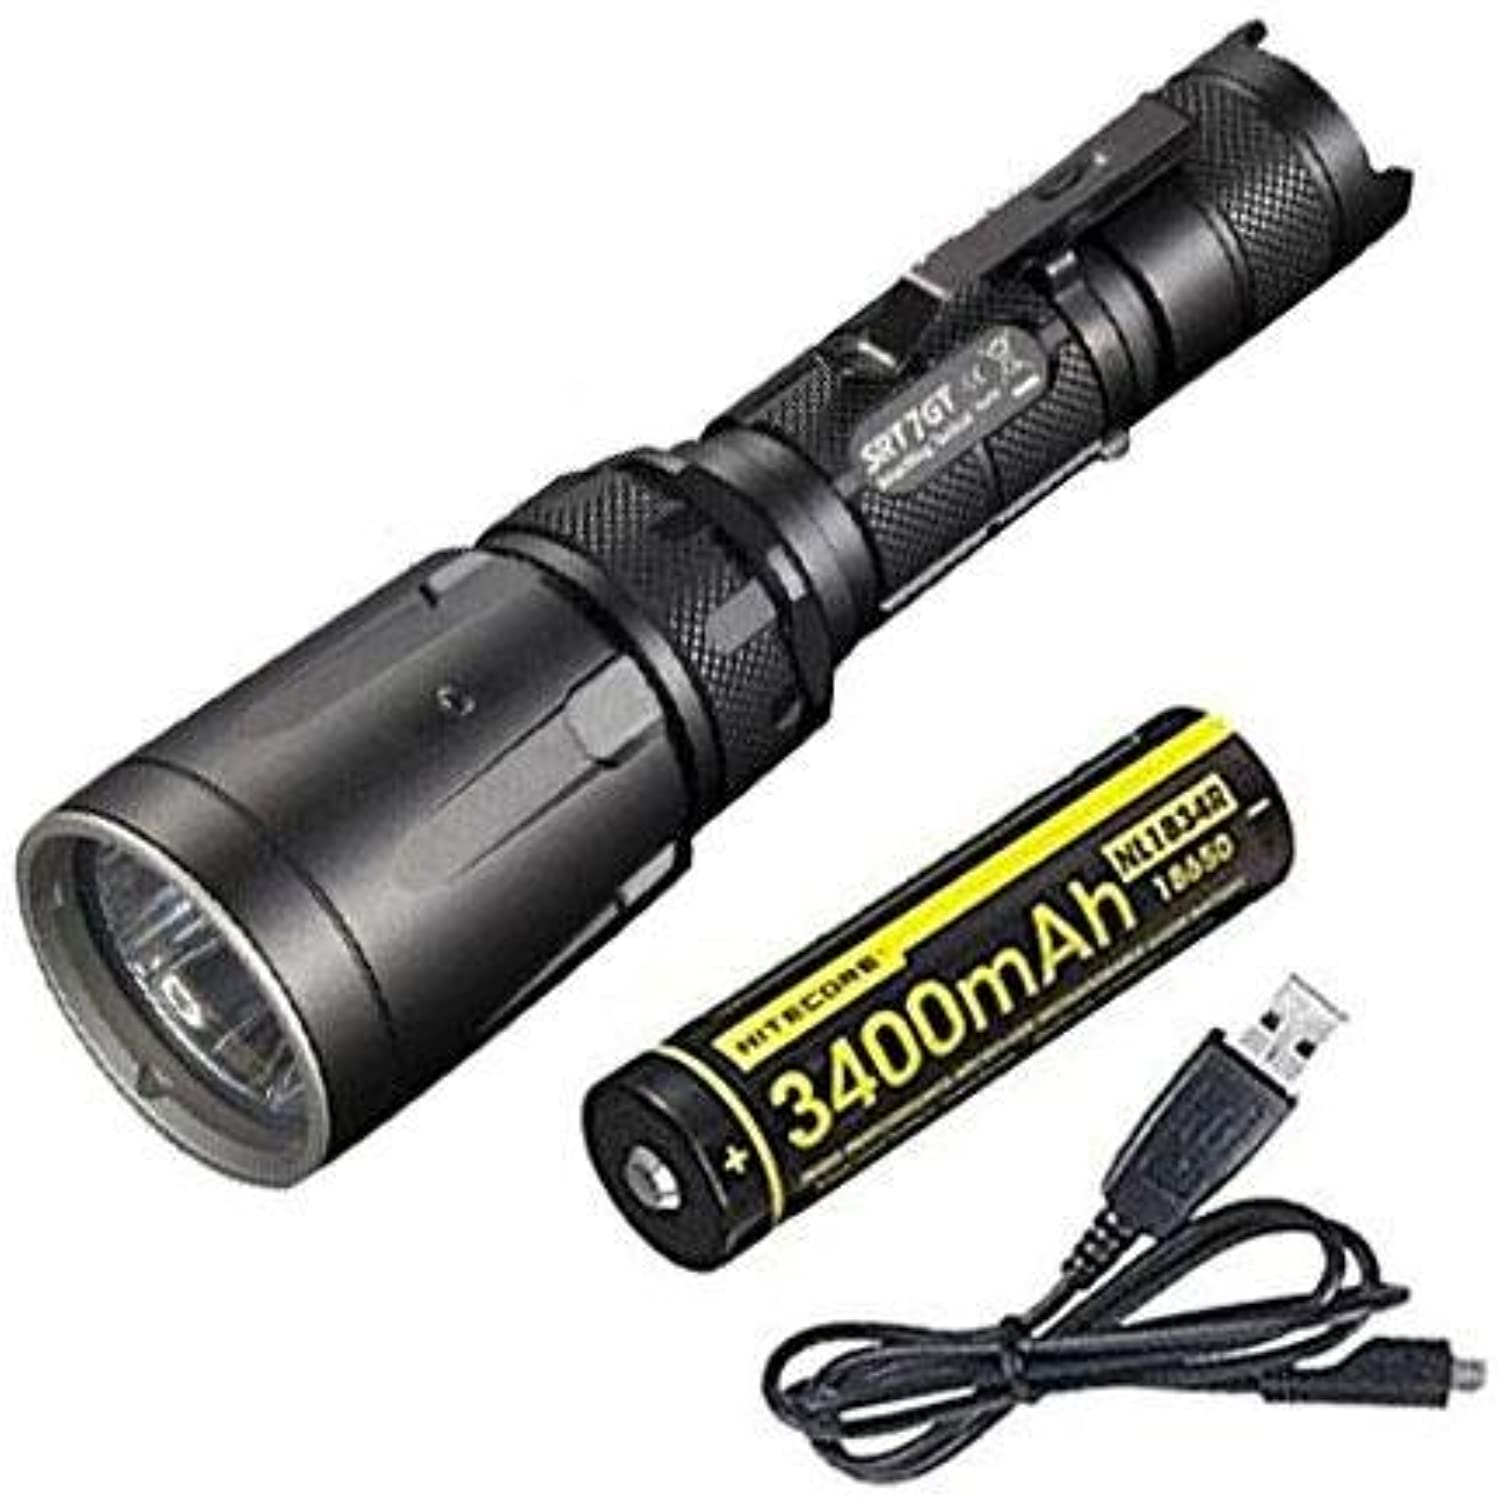 Combo  Nitecore SRT7GT Flashlight Smart Select Ring Multicolord LED's  1000 Lumens XPL Hi V3 w NL1834R Battery +Free EcoSensa USB Cable